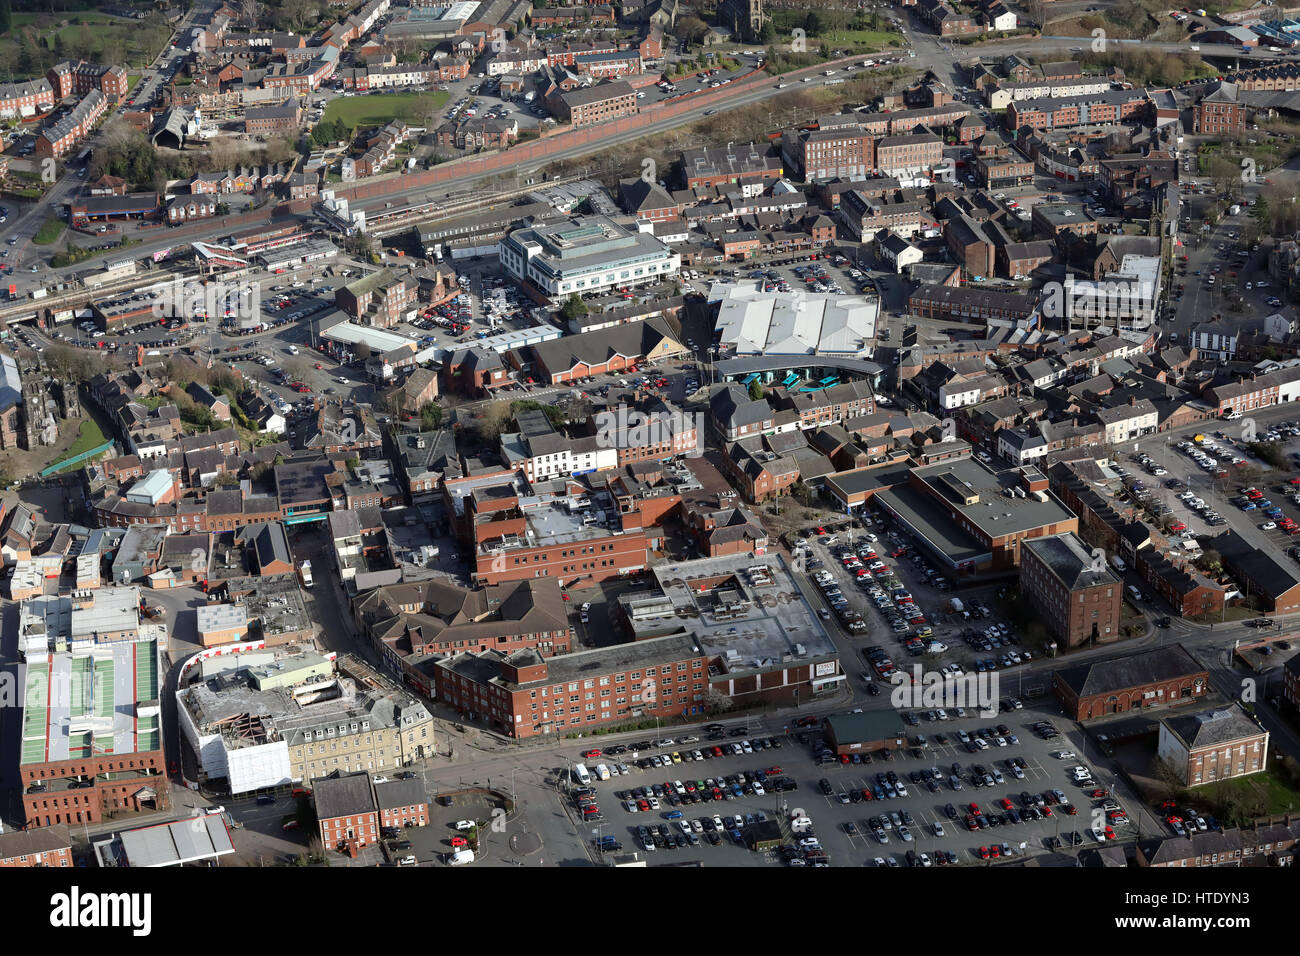 aerial view of Macclesfield town centre, Cheshire, UK - Stock Image